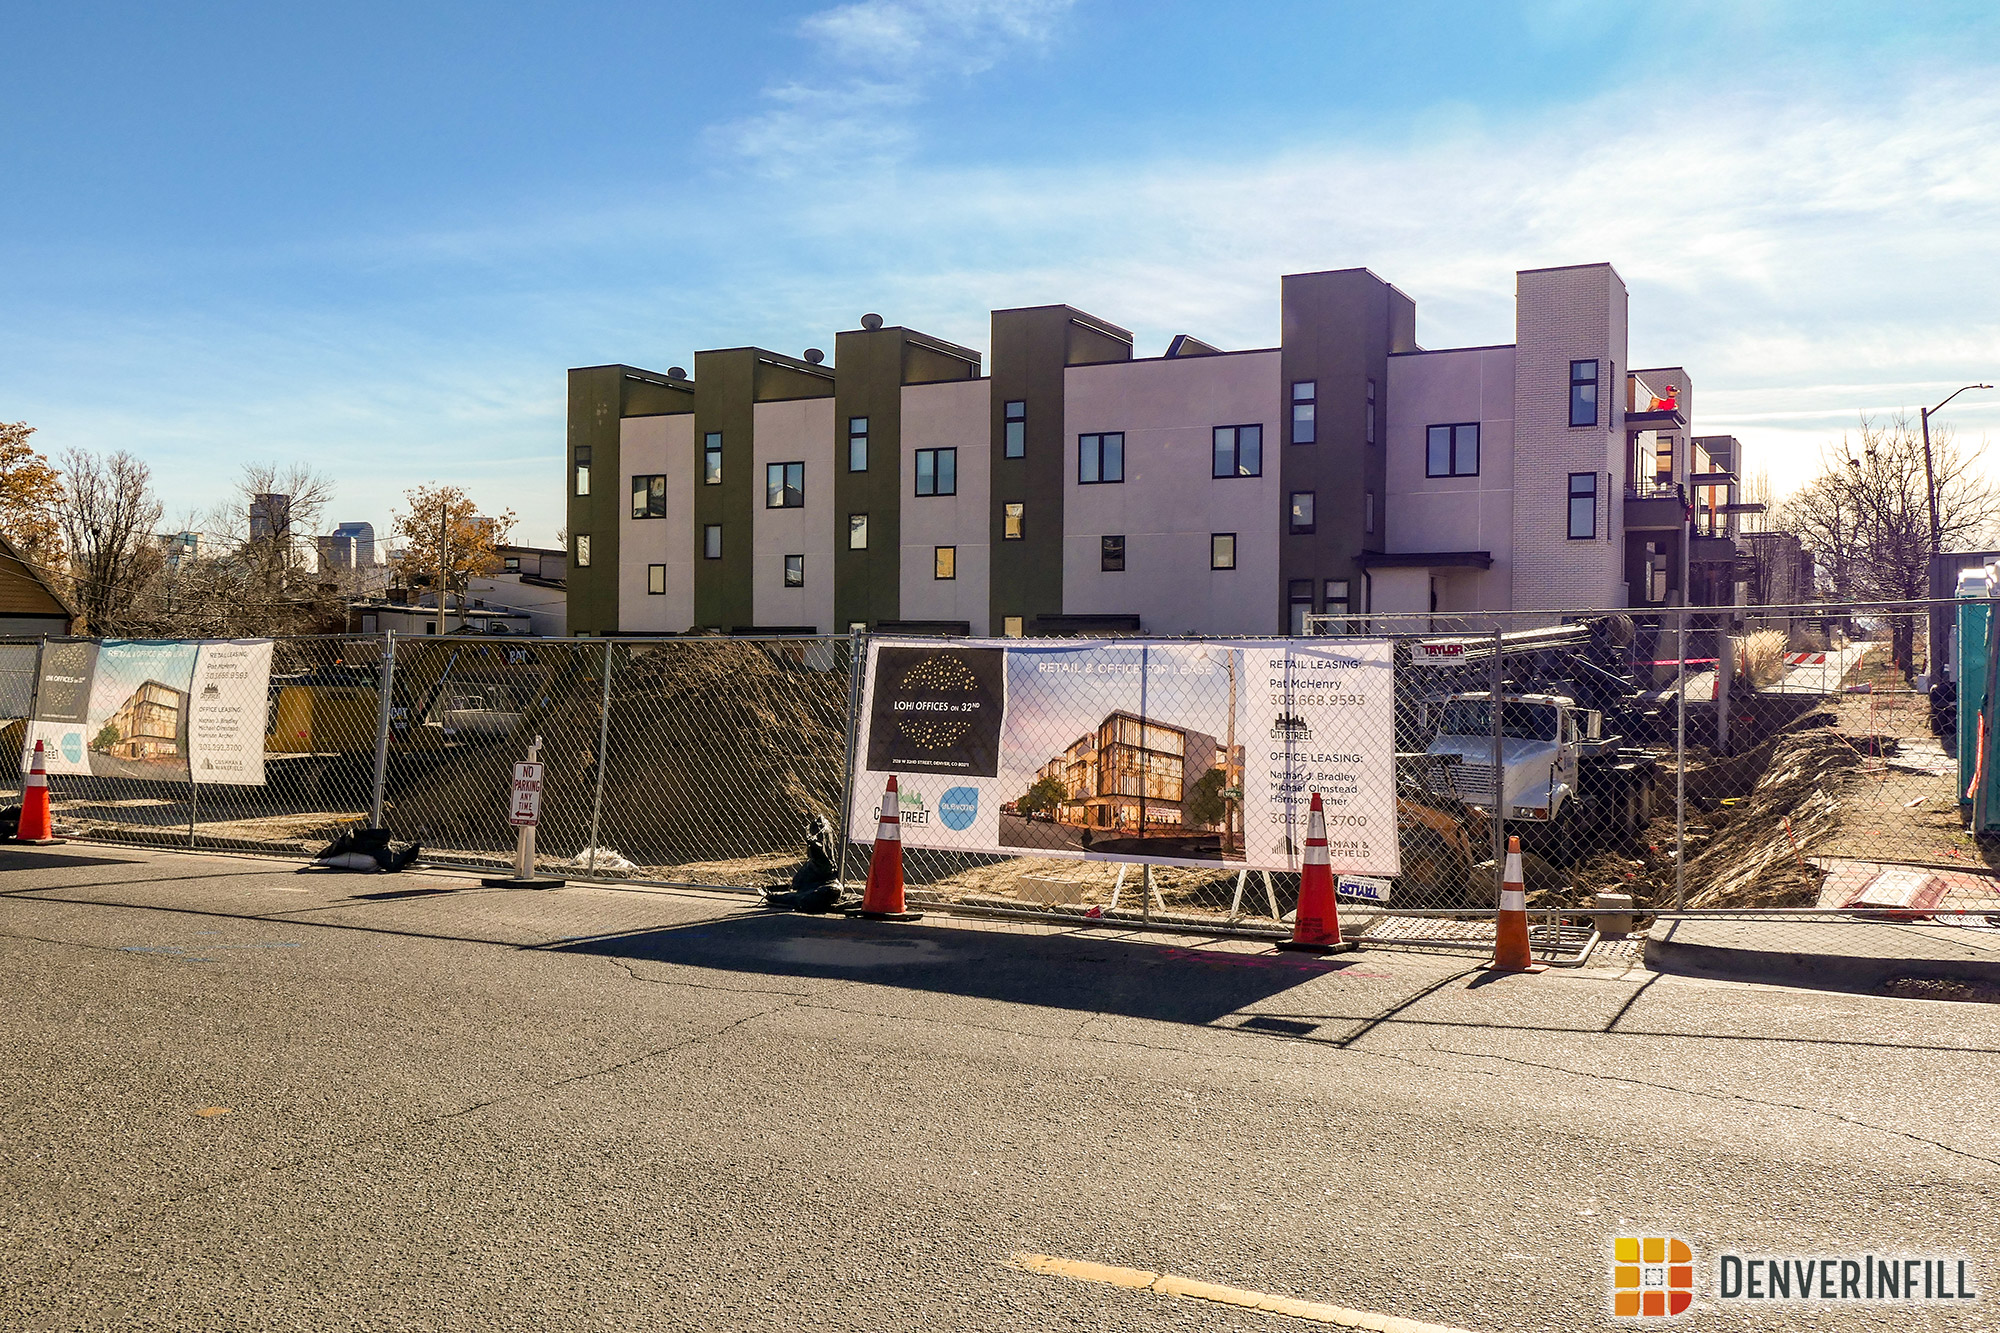 The LoHi Offices on 32nd construction site